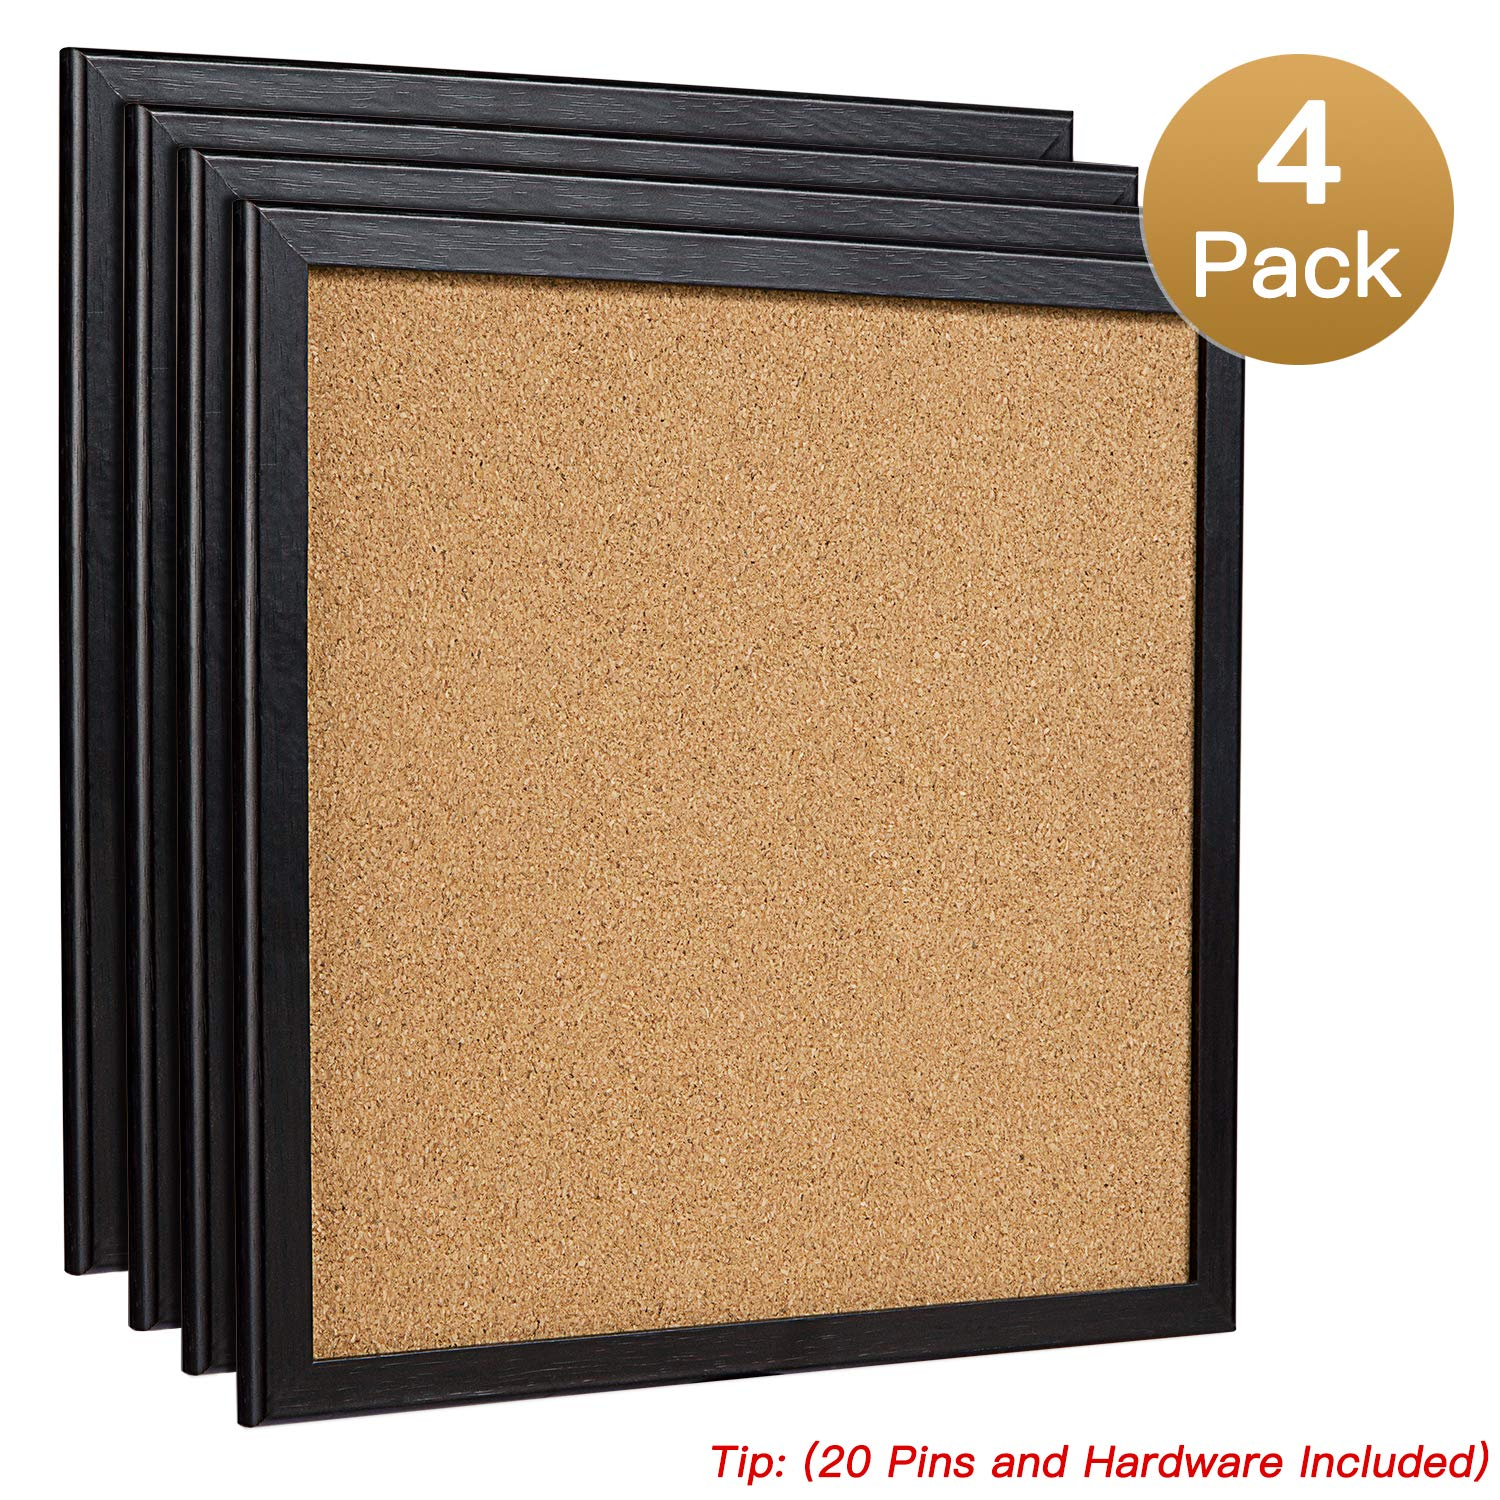 HBlife Cork Board Bulletin Board 12'X 12' Square Wall Tiles,Modern Black Framed Corkboard for School, Home & Office (Set Including 20 Push Pins,Hardware and Template) HB-life